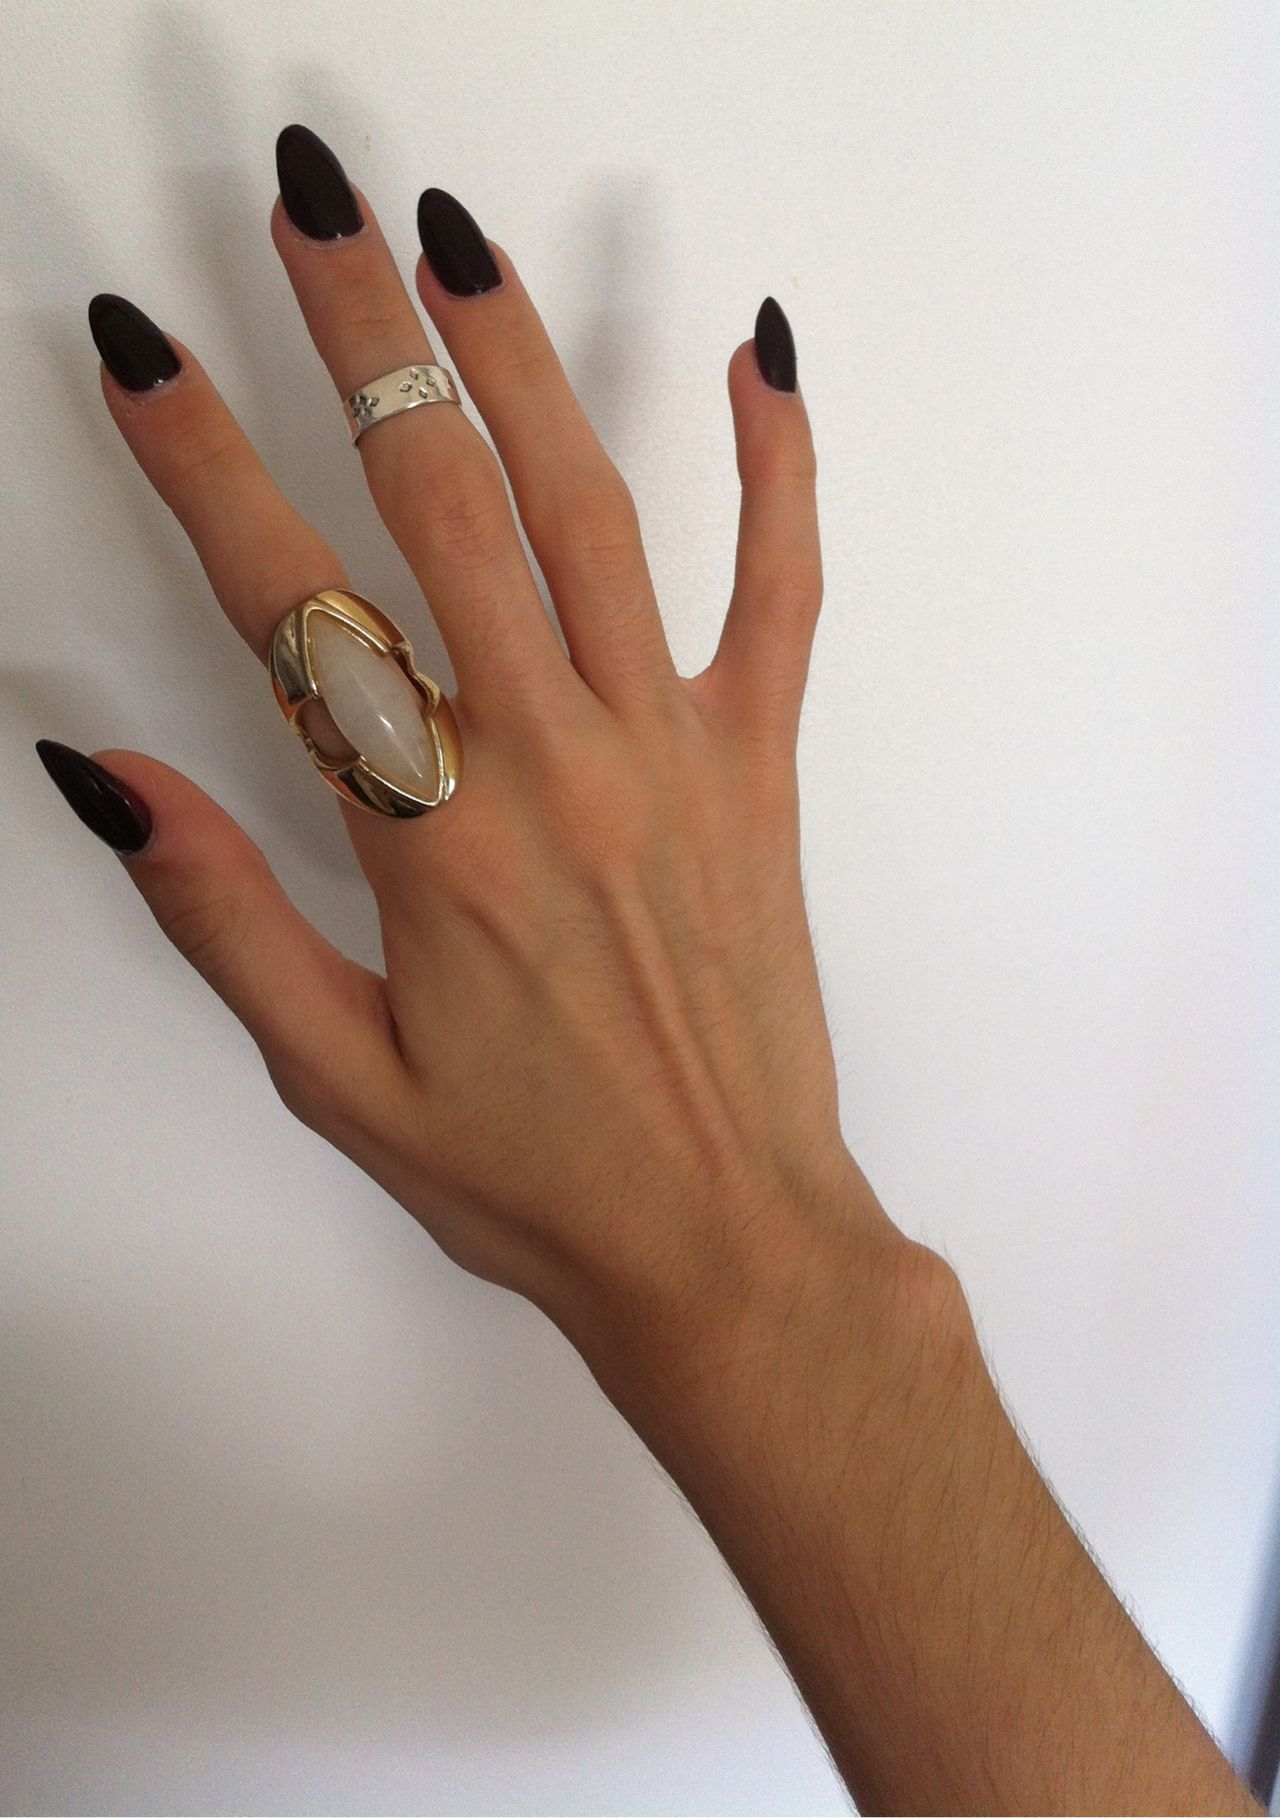 Pointy And Posh Top 65 Amazing Stiletto Nails: Pointy Black Nails And Statement Rings